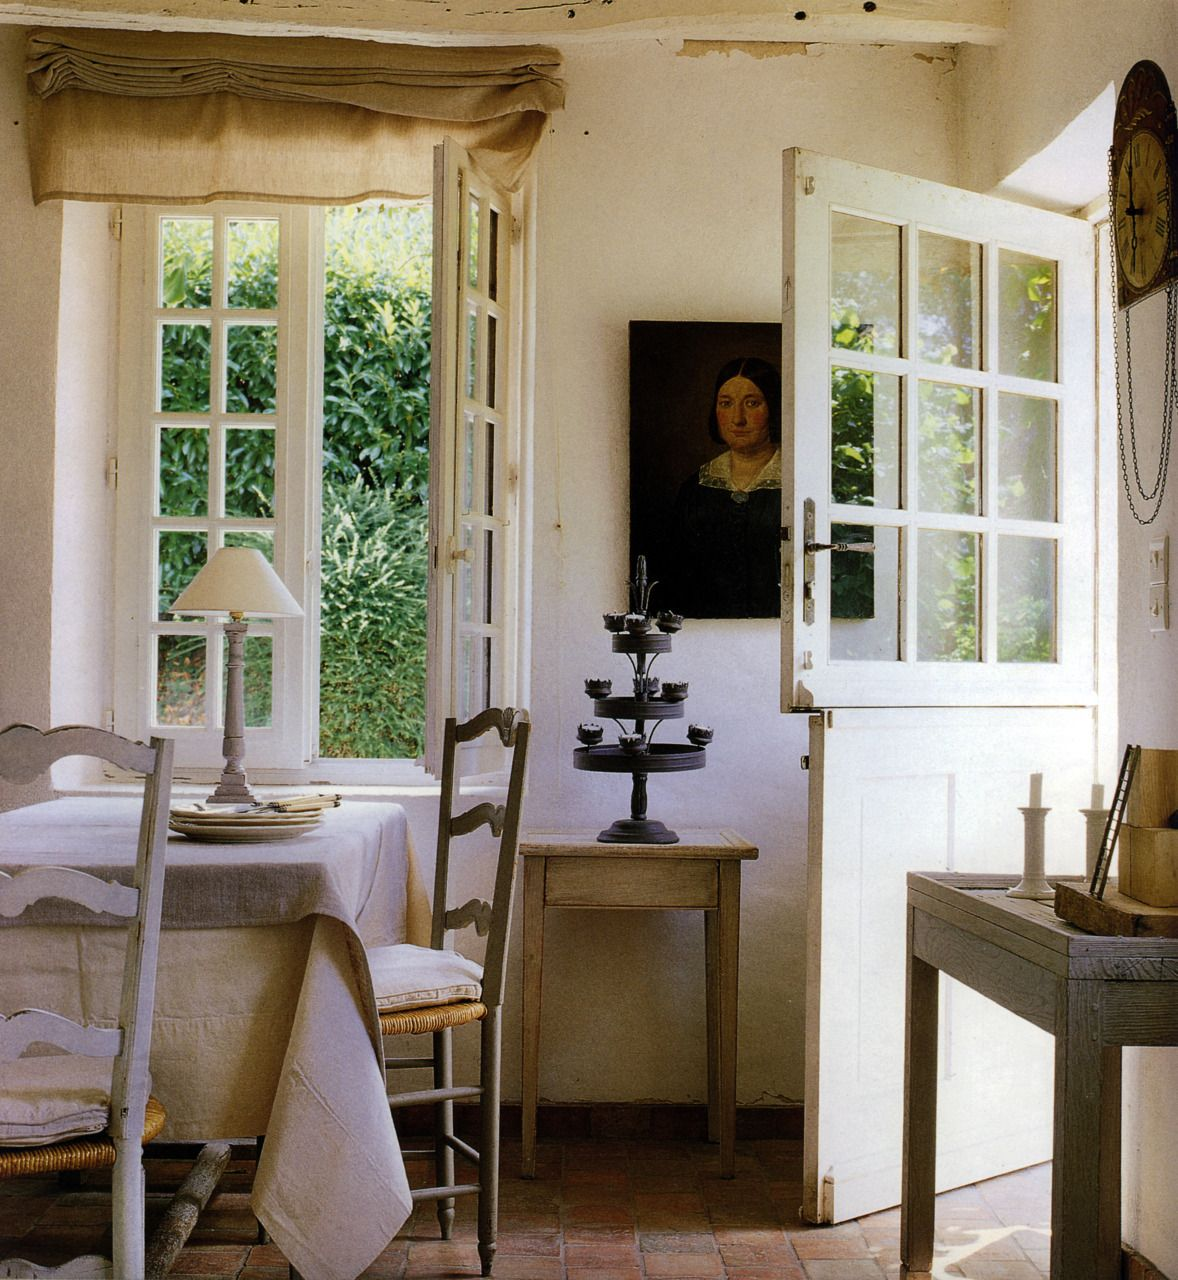 Kitchen Stable Doors: Love Those Stable Doors And This Whole Room (from